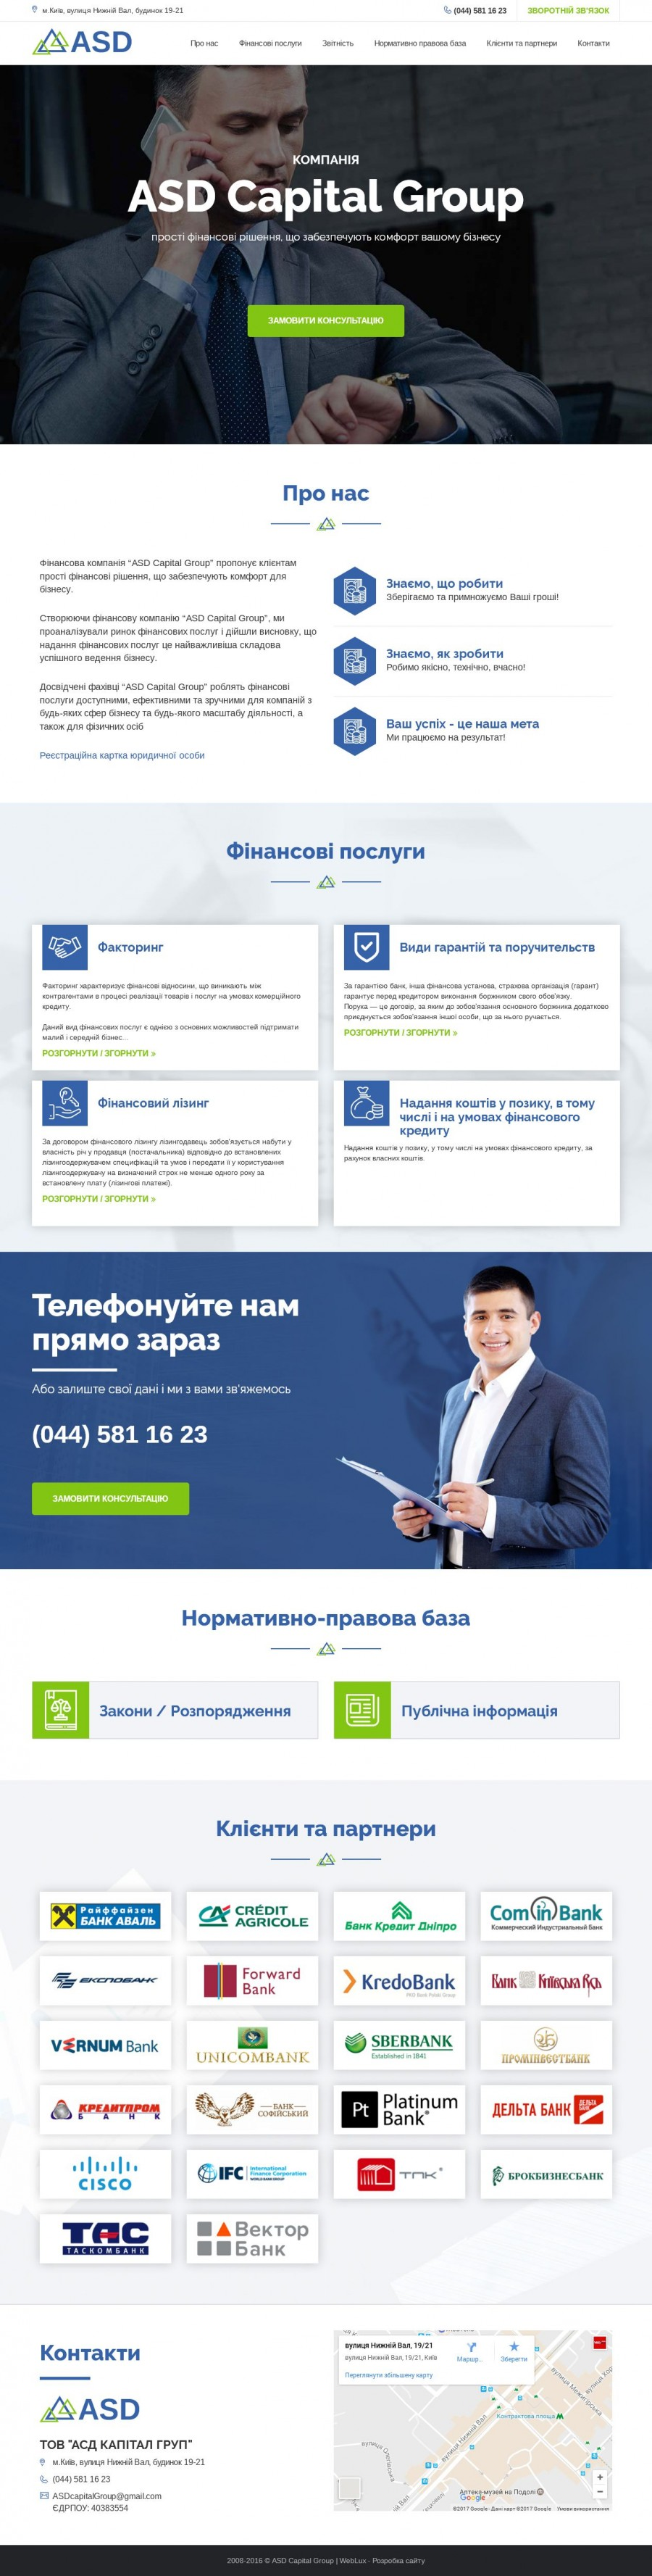 Development of the site «ASD Capital Group»